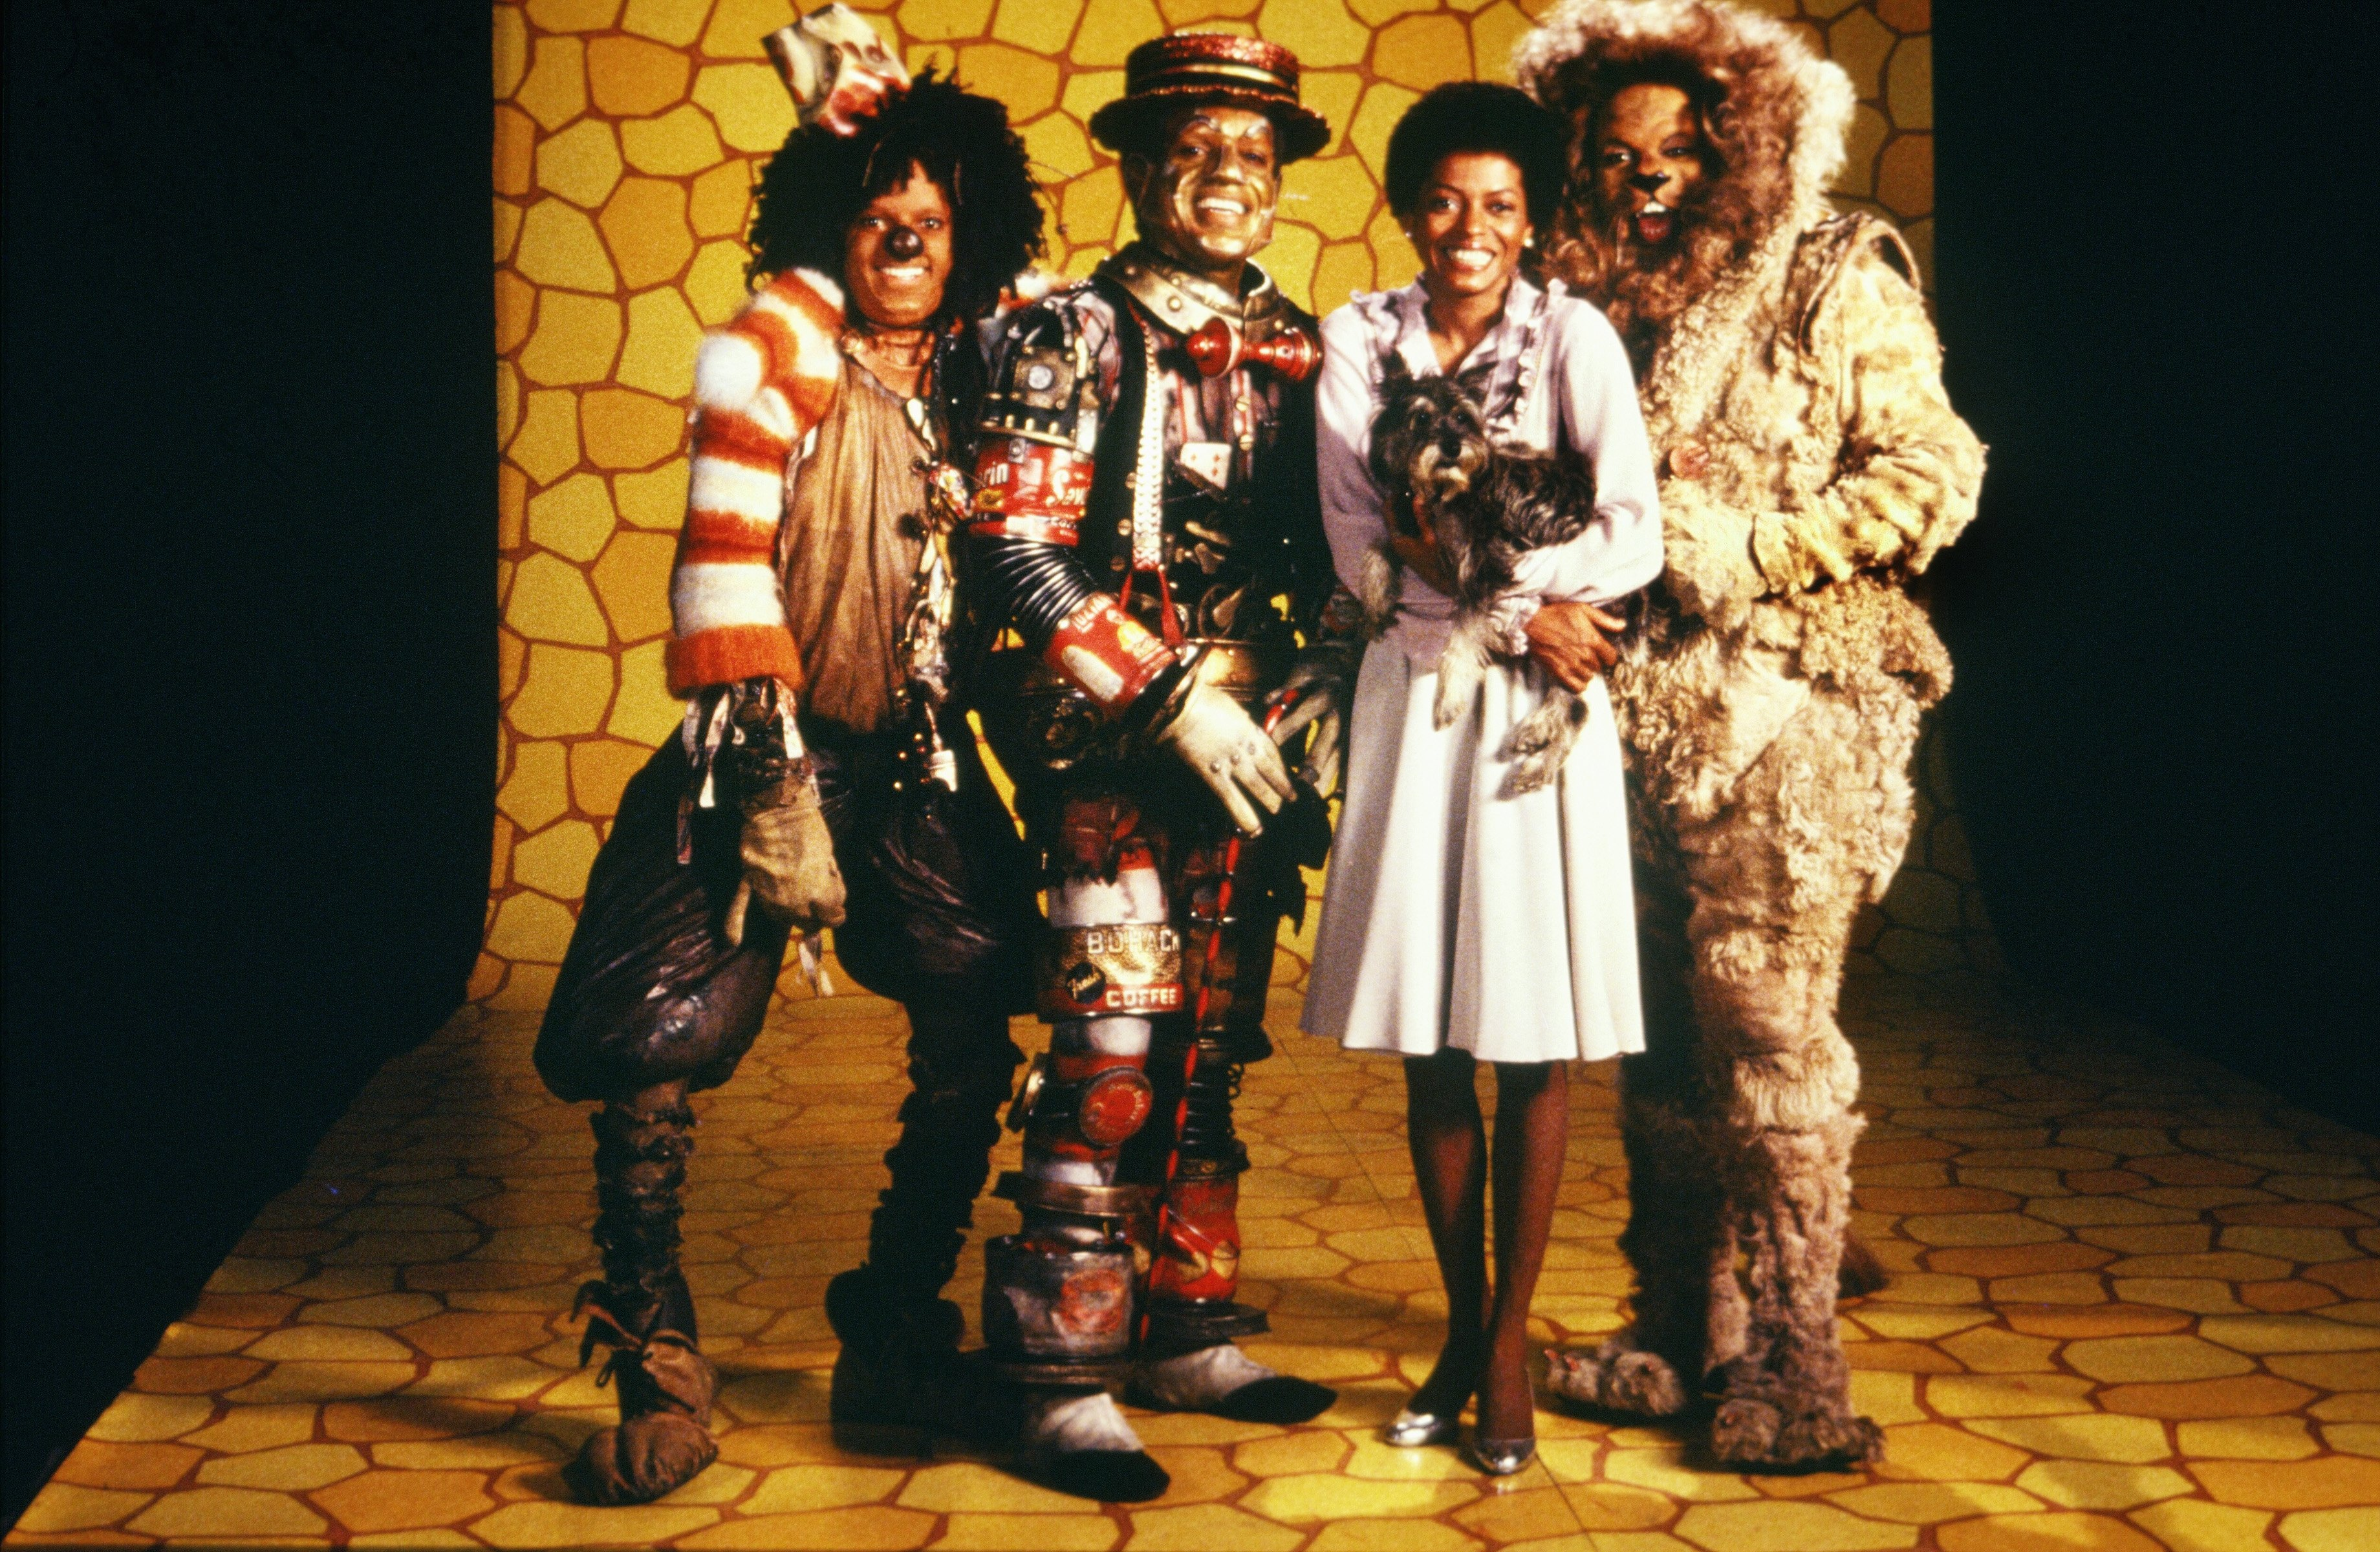 The cast of 'The Wiz' (L-R Michael Jackson, Nipsey Russell, Diana Ross and Ted Ross) pose for a publicity shot in 1978 in New York, New York.